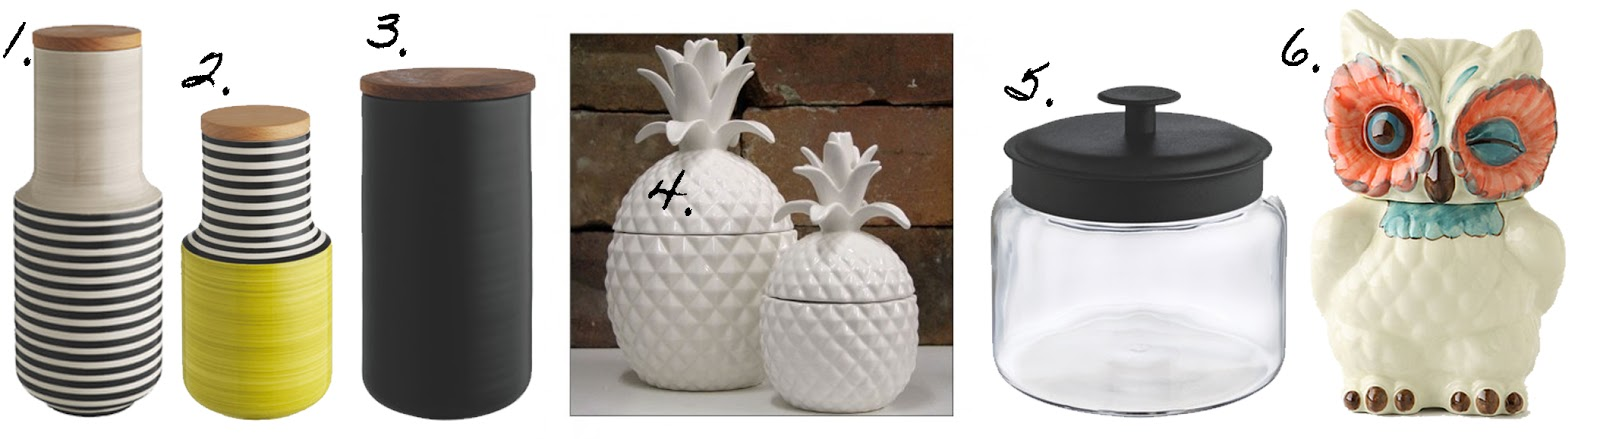 medium storage jar 15 habitat 3 kahala large stoneware jar 10 on sale habitat 4 large ceramic pineapple jar 35 mrs i